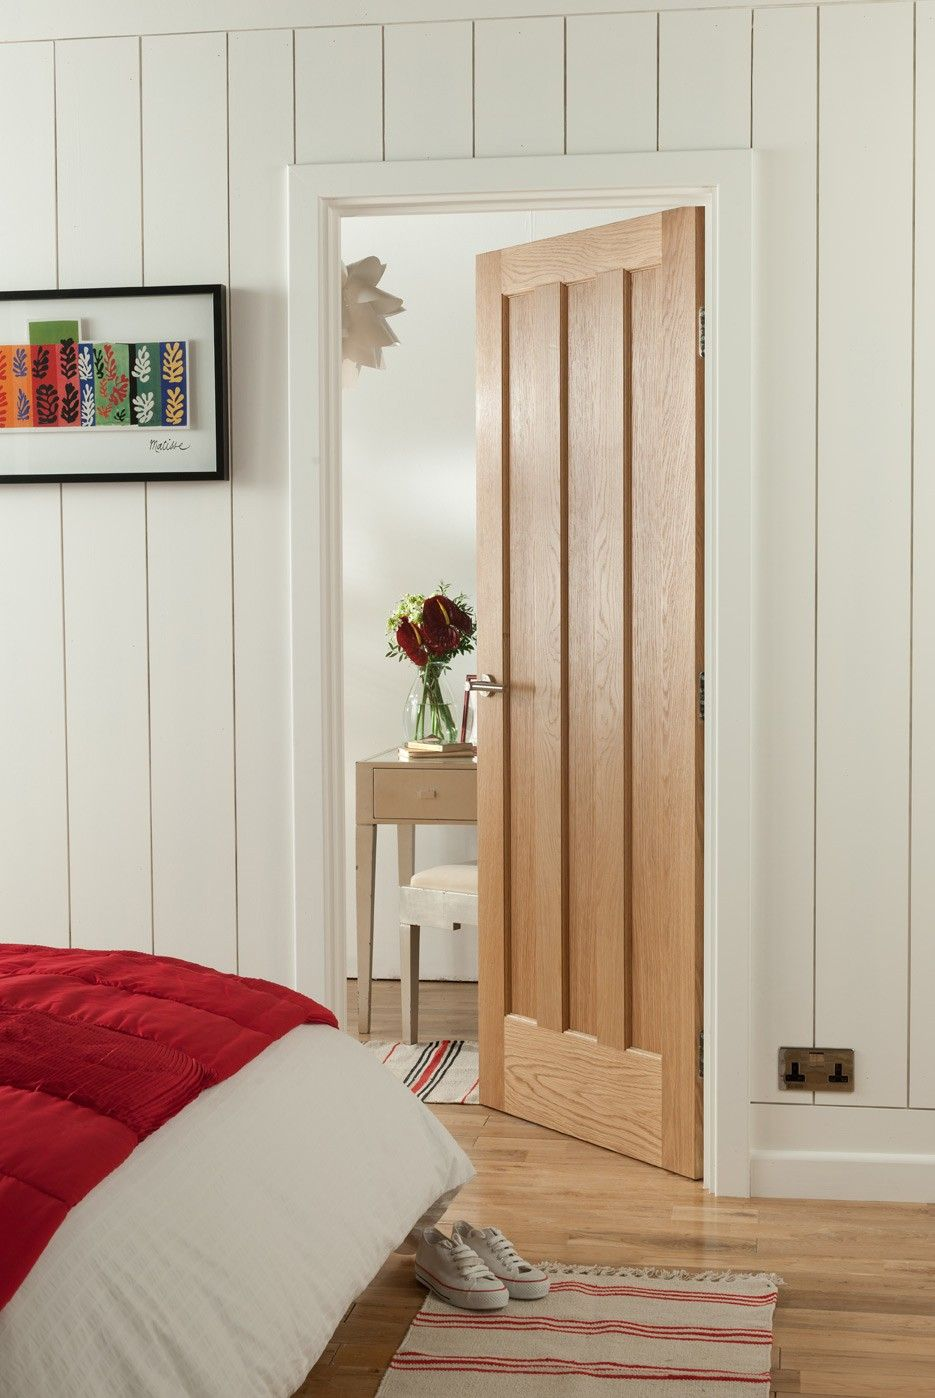 Wooden Internal Doors With: Beautiful Oak Internal Doors Give The Home A Classic